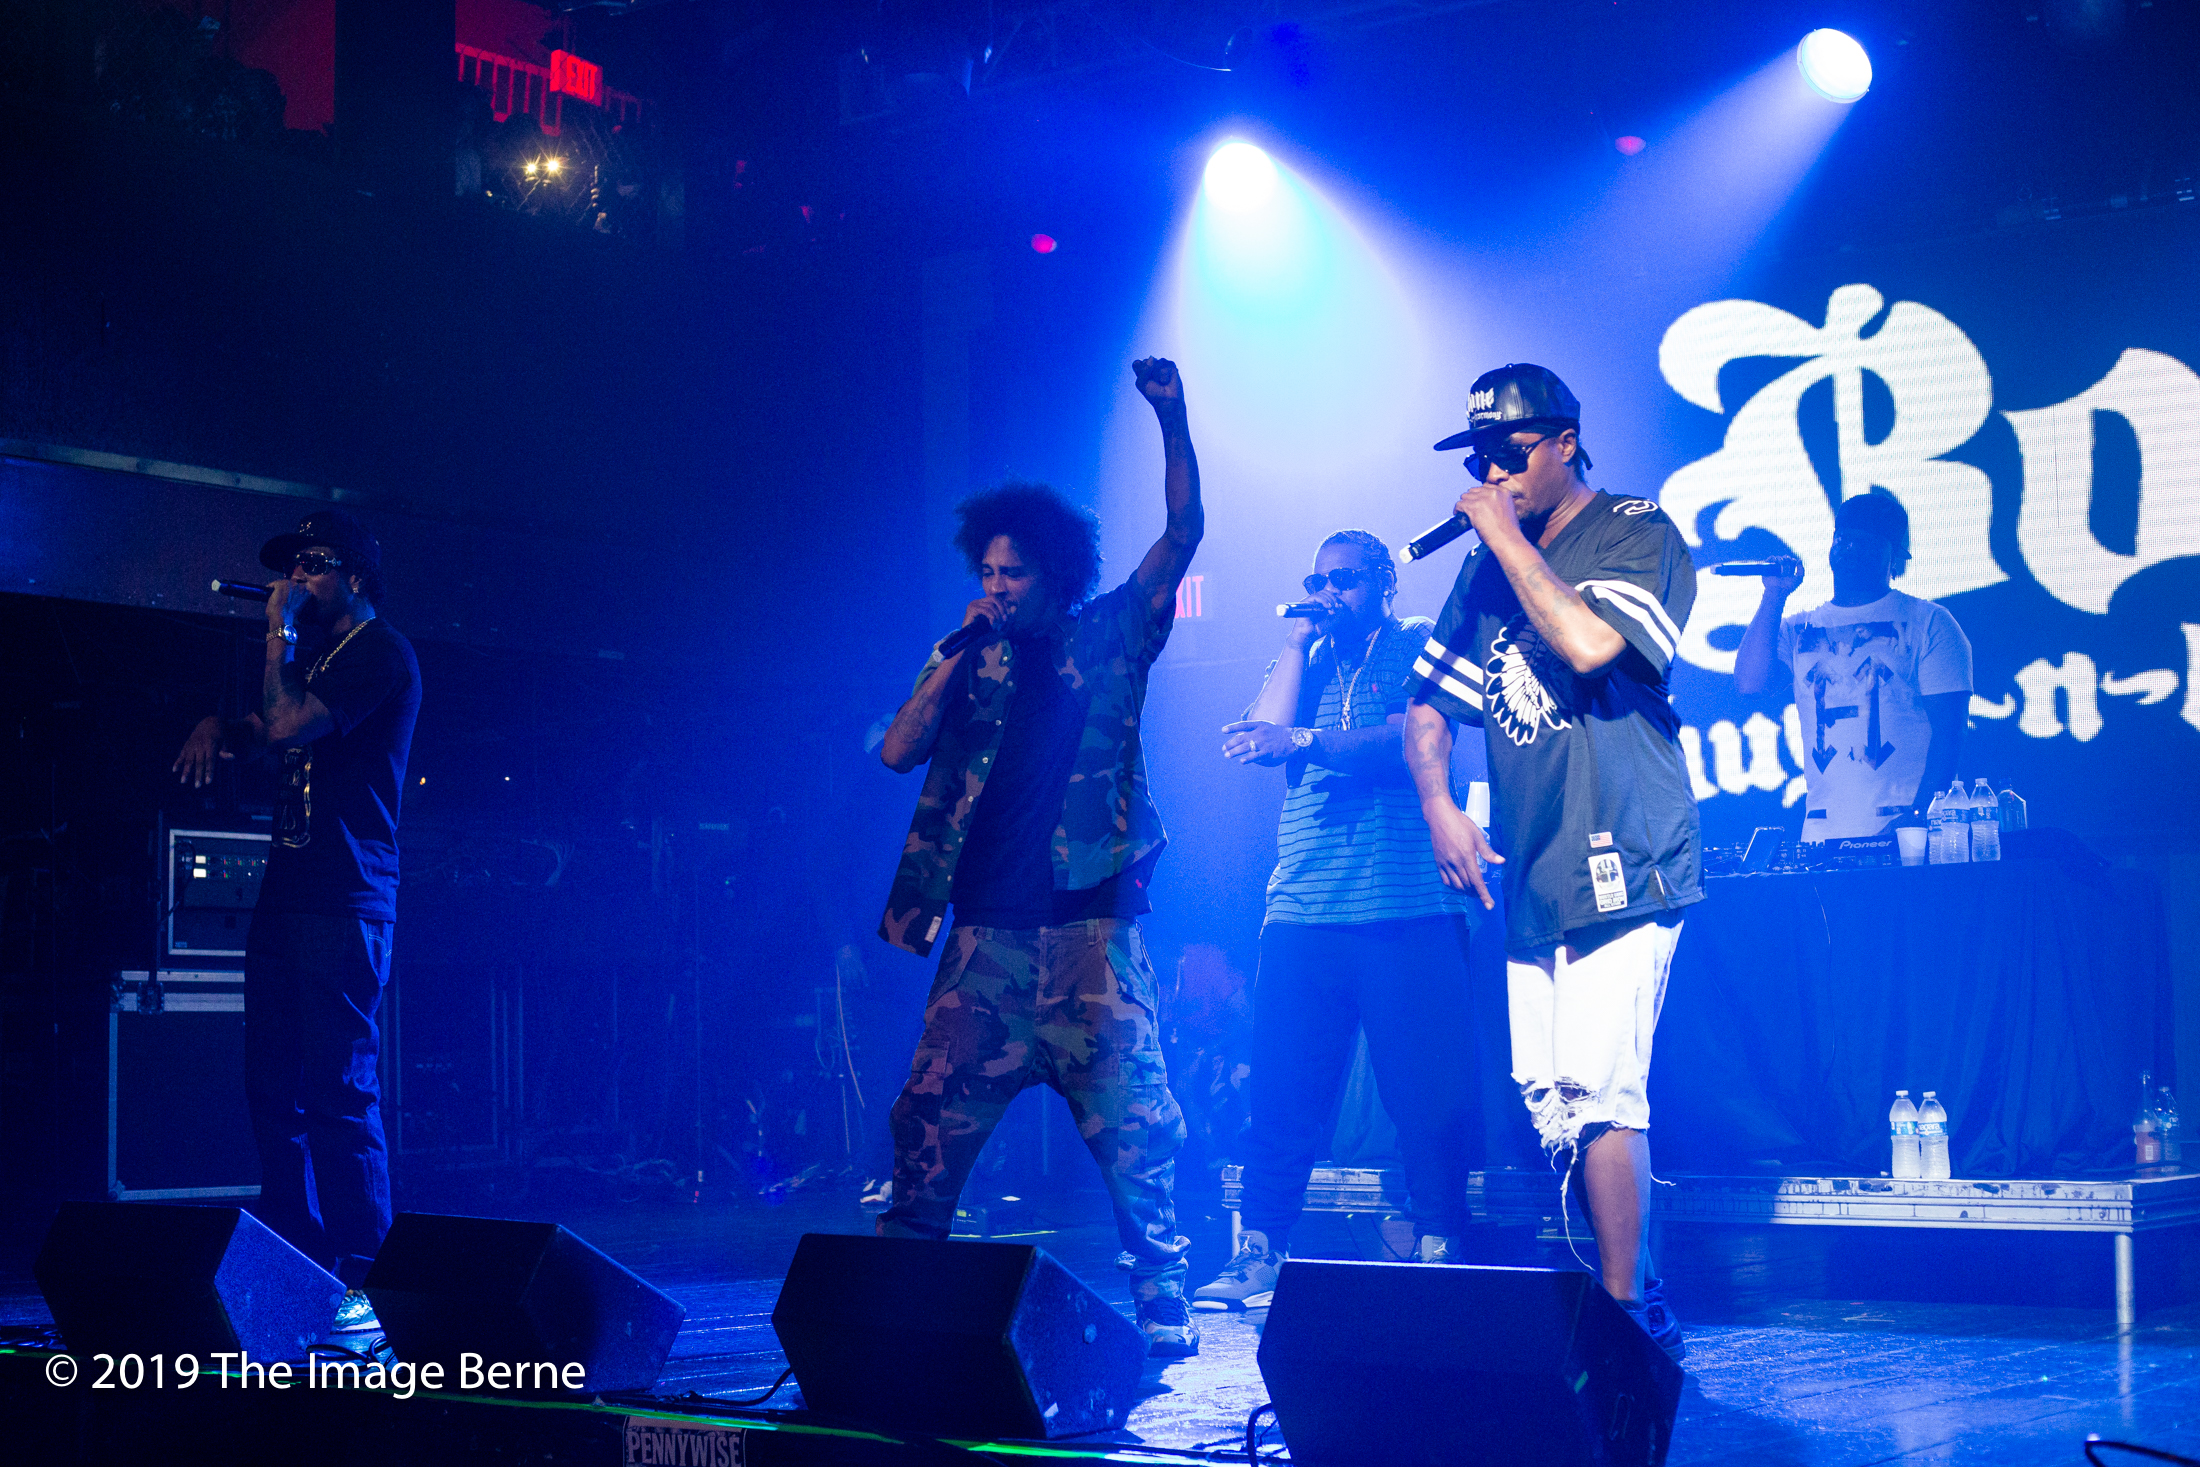 Krayzie Bone, Wish Bone, Flesh-N-Bone, Layzie Bone, and Bizzy Bone-093.jpg